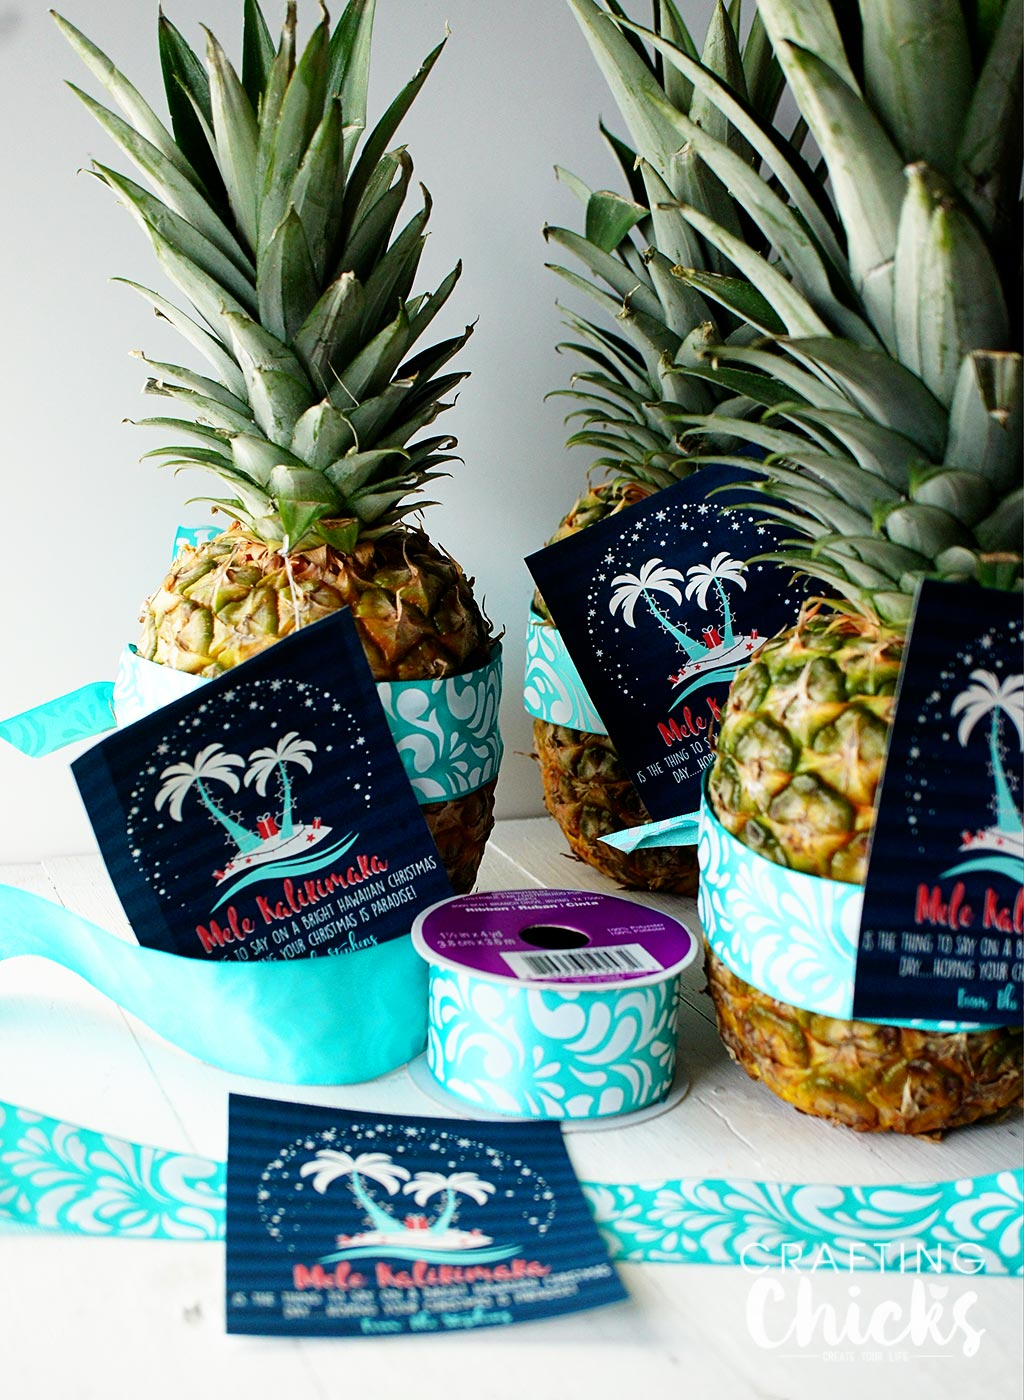 Christmas Gift Tag - Free Printable - Neighbor gift idea - Give a pineapple and wish your neighbors a Mele Kalikimaka!